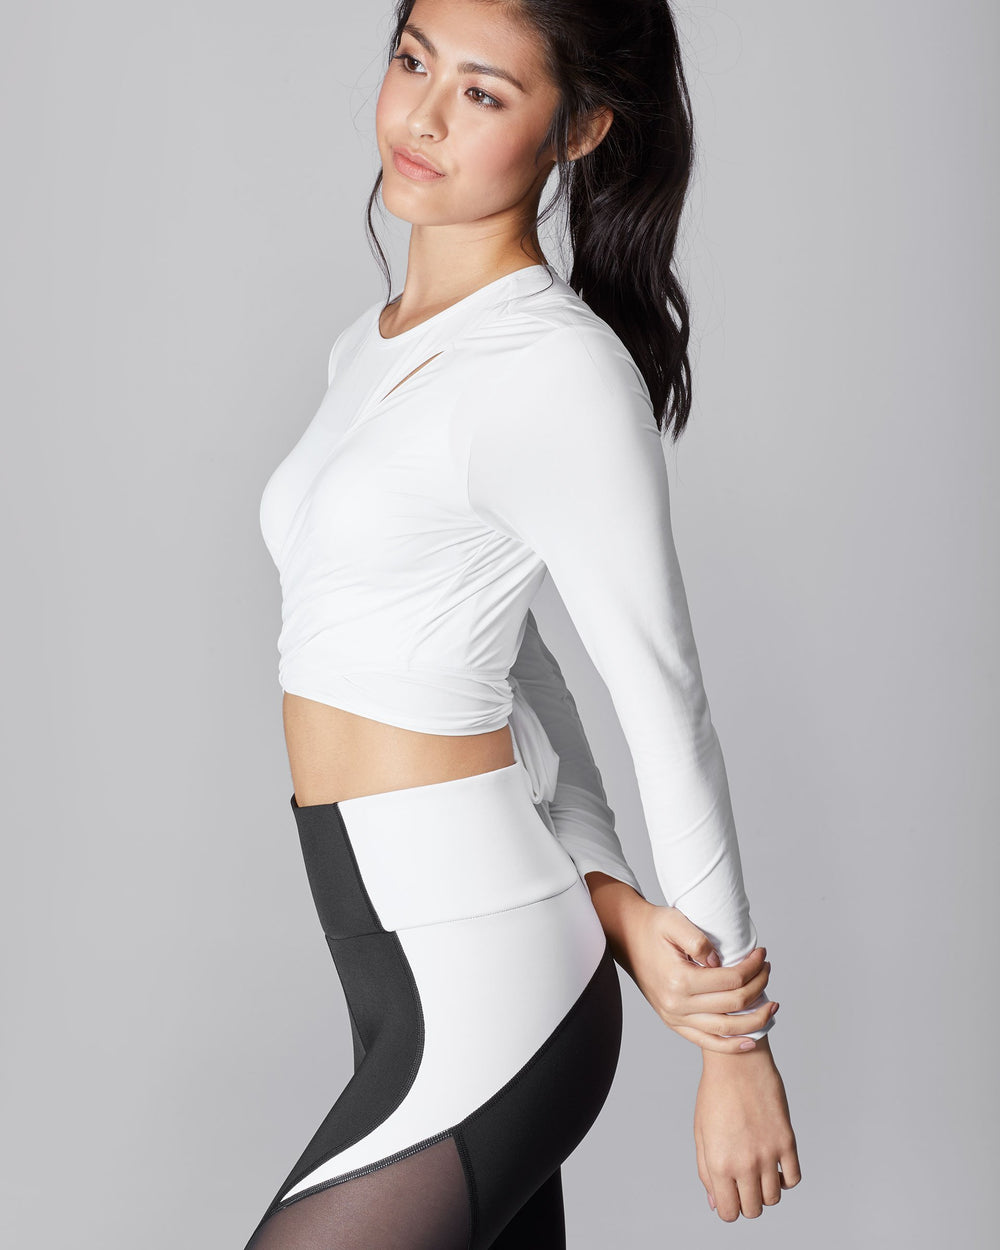 Glow Wrap Top - White